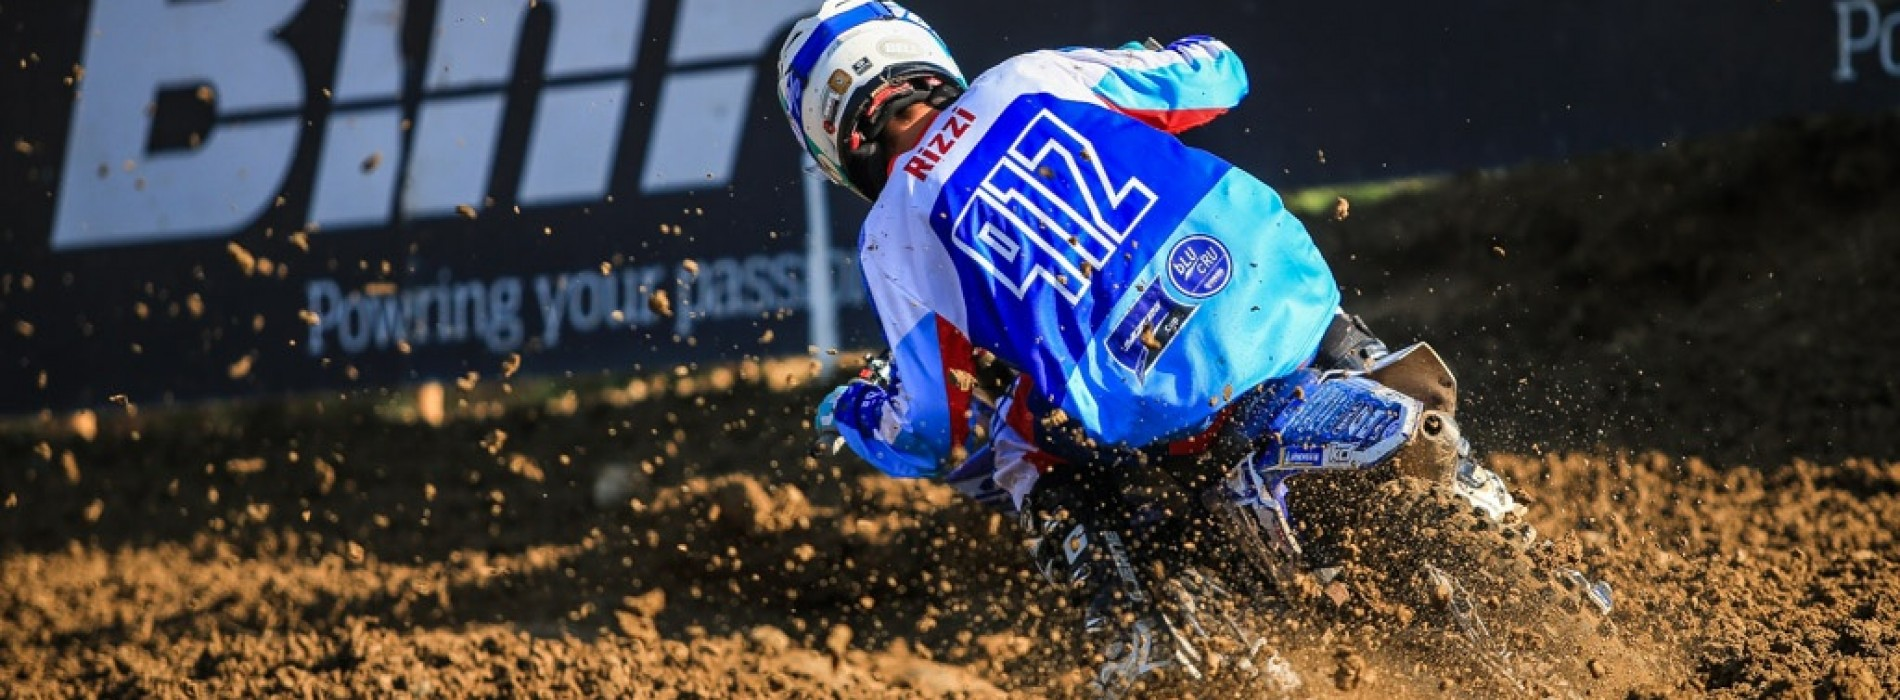 FIM Motocross World Championship- Growth of Rider Talent